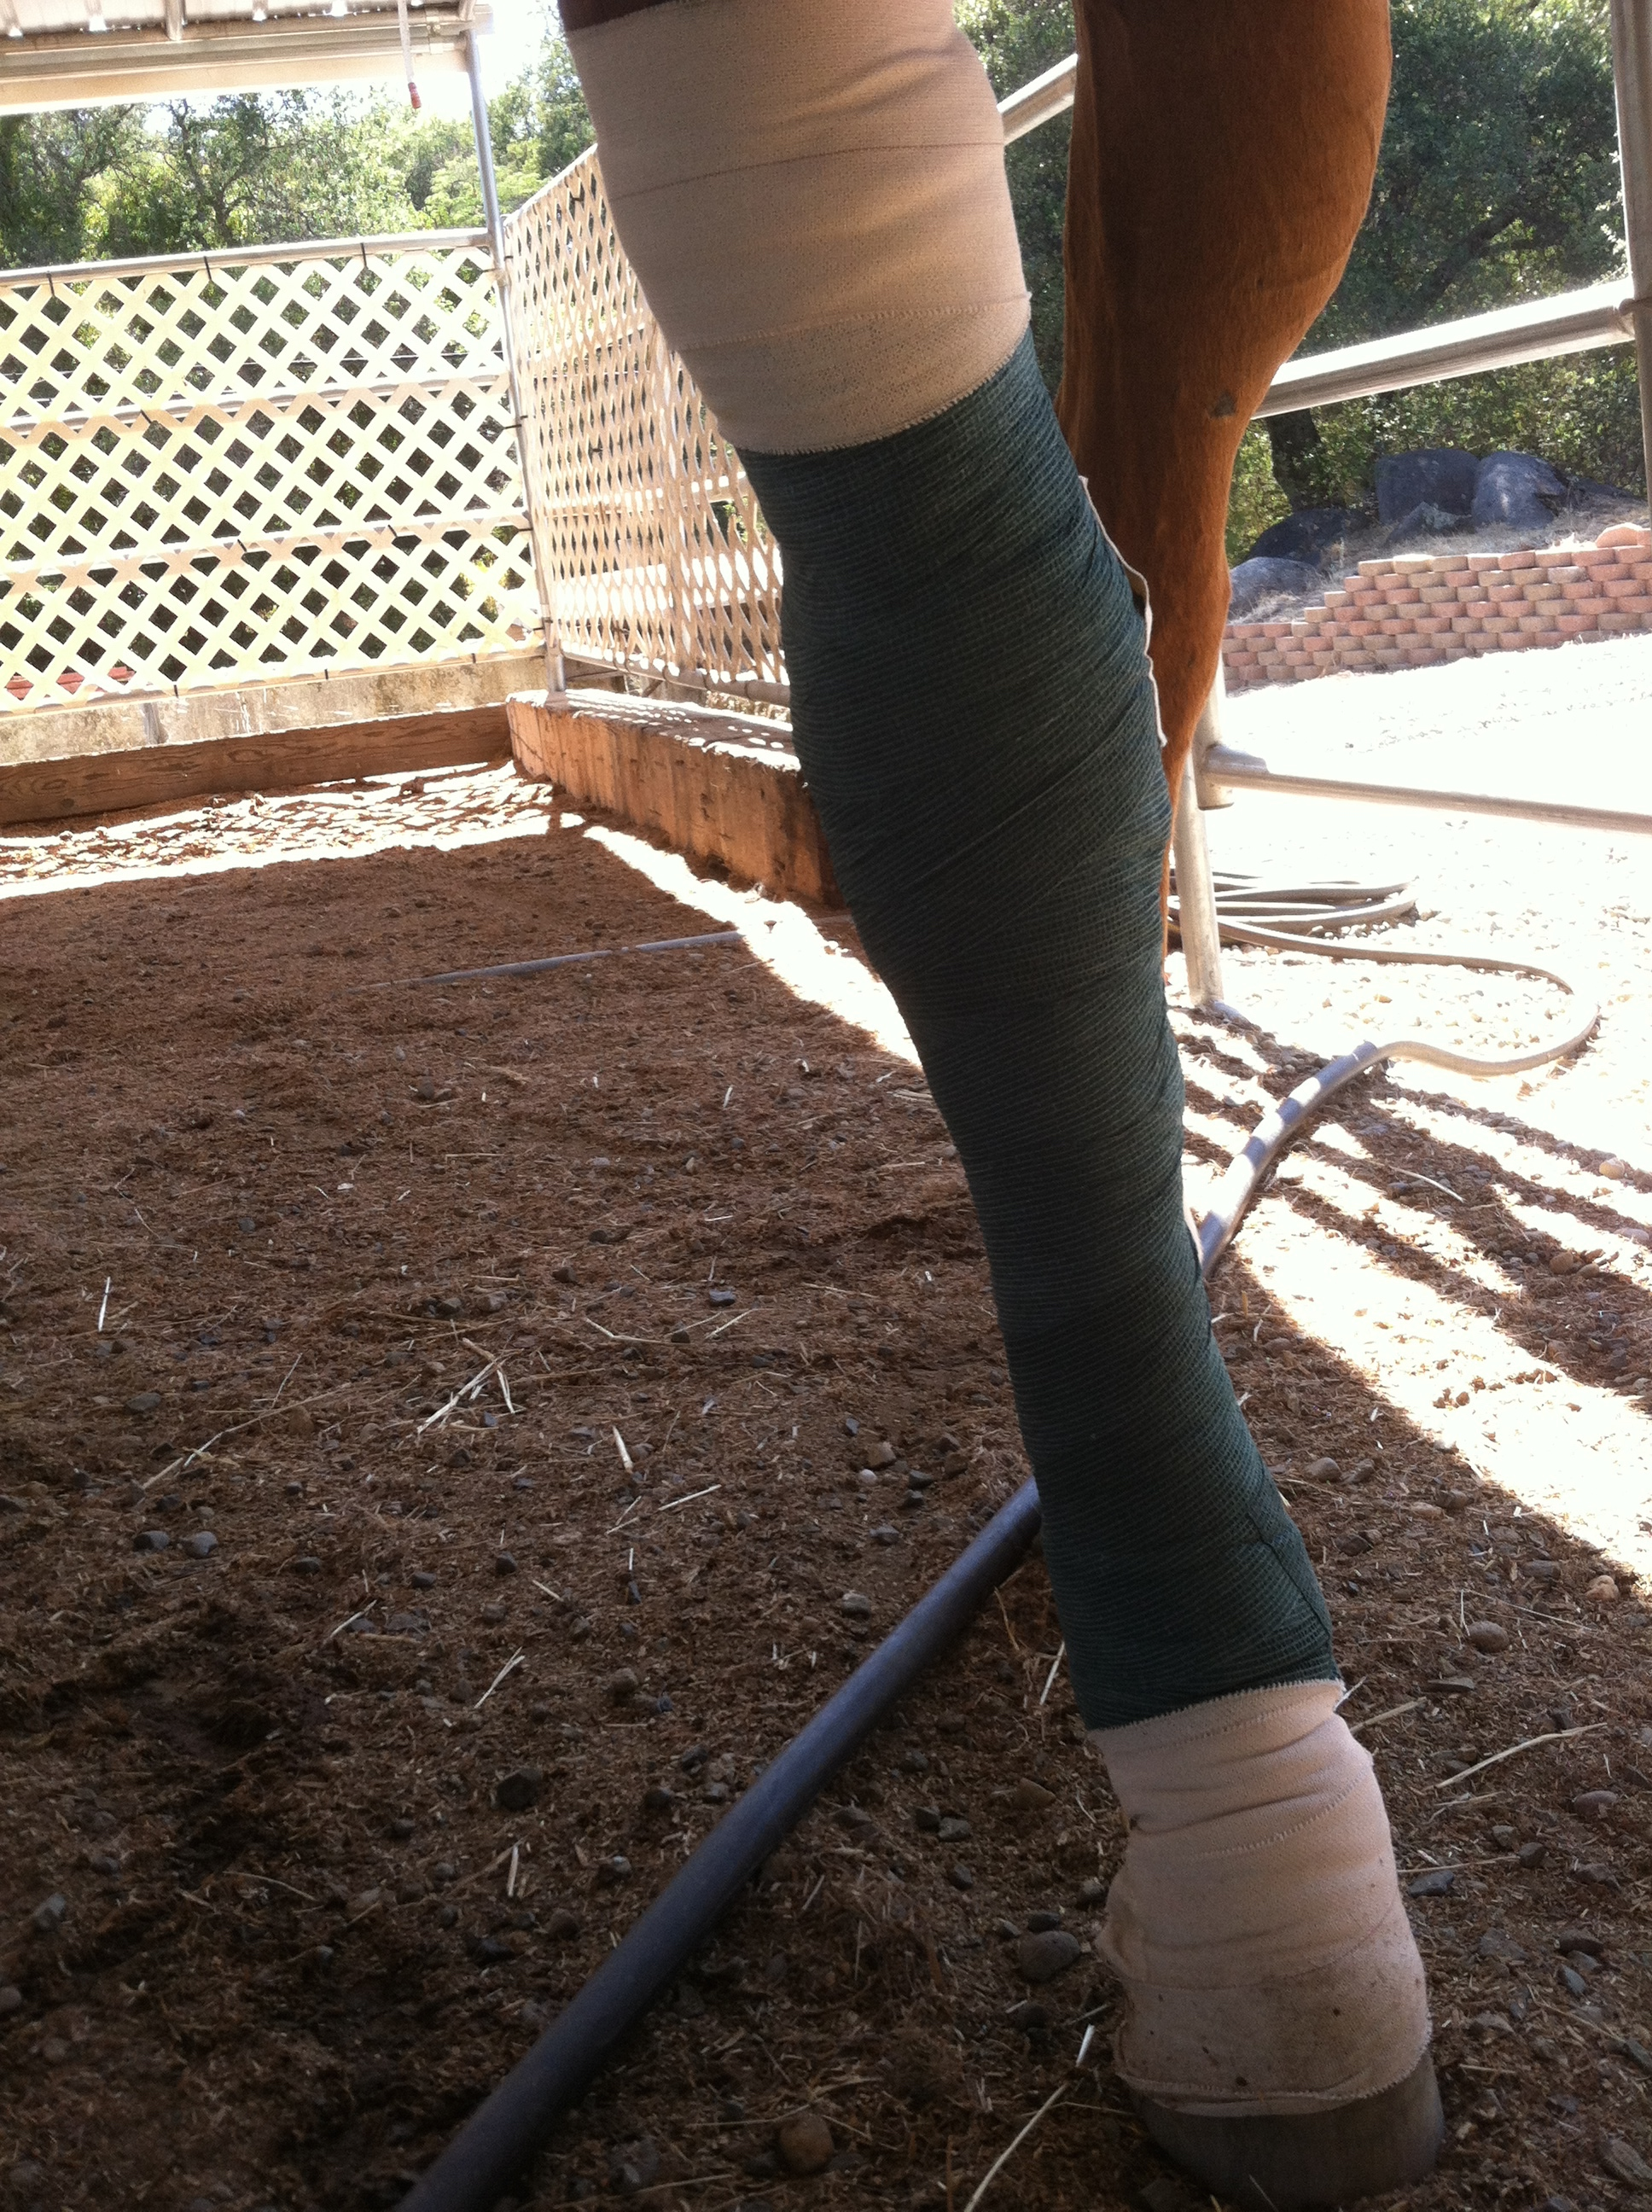 An unfortunate accident my senior mare had in the pasture that warranted an emergency vet call